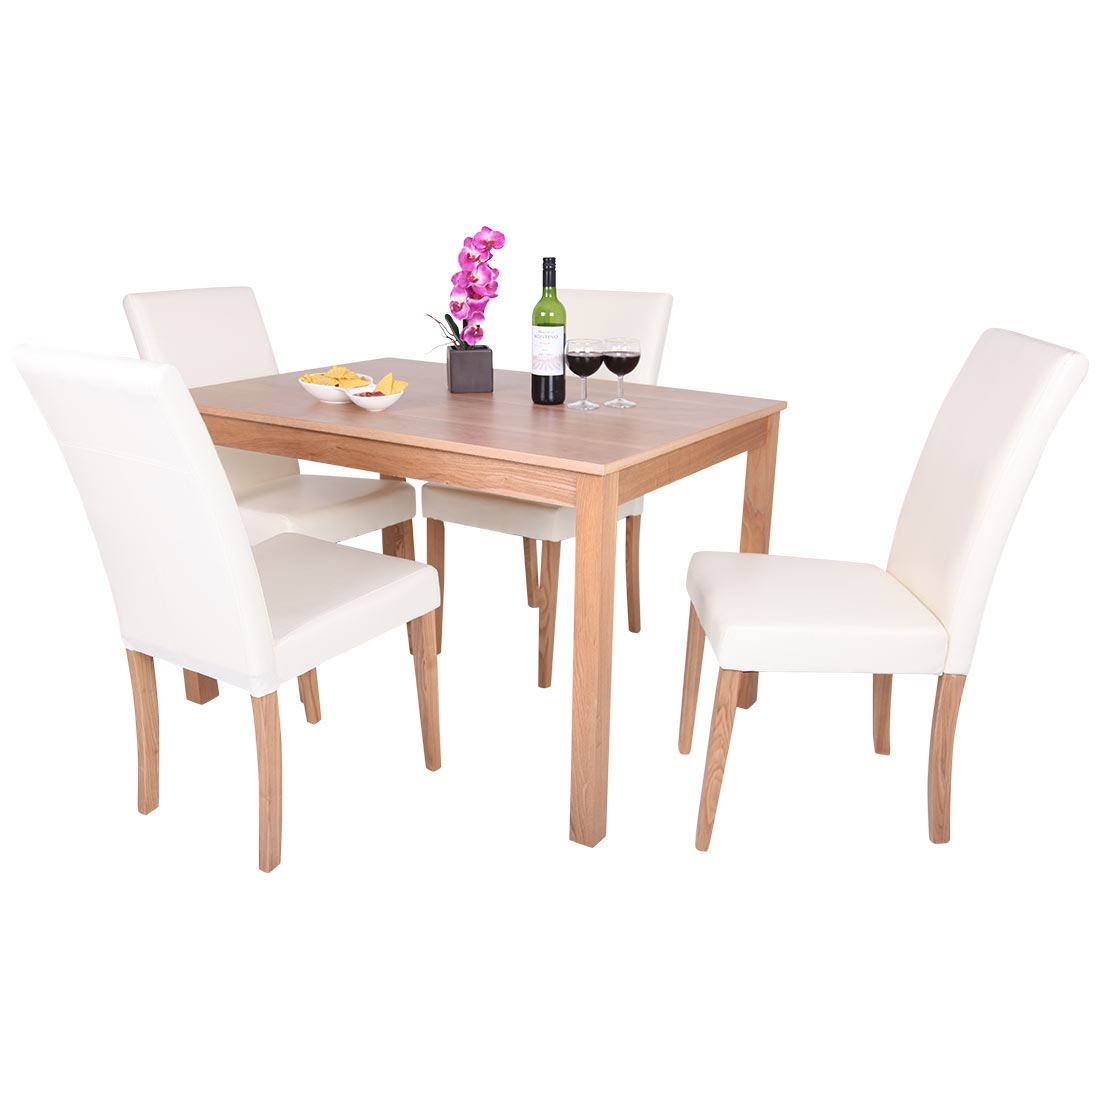 OAKDEN OAK VENEER DINING TABLE AND 4 X CREAM LEATHER HIGH BACK CHAIR SET WOOD